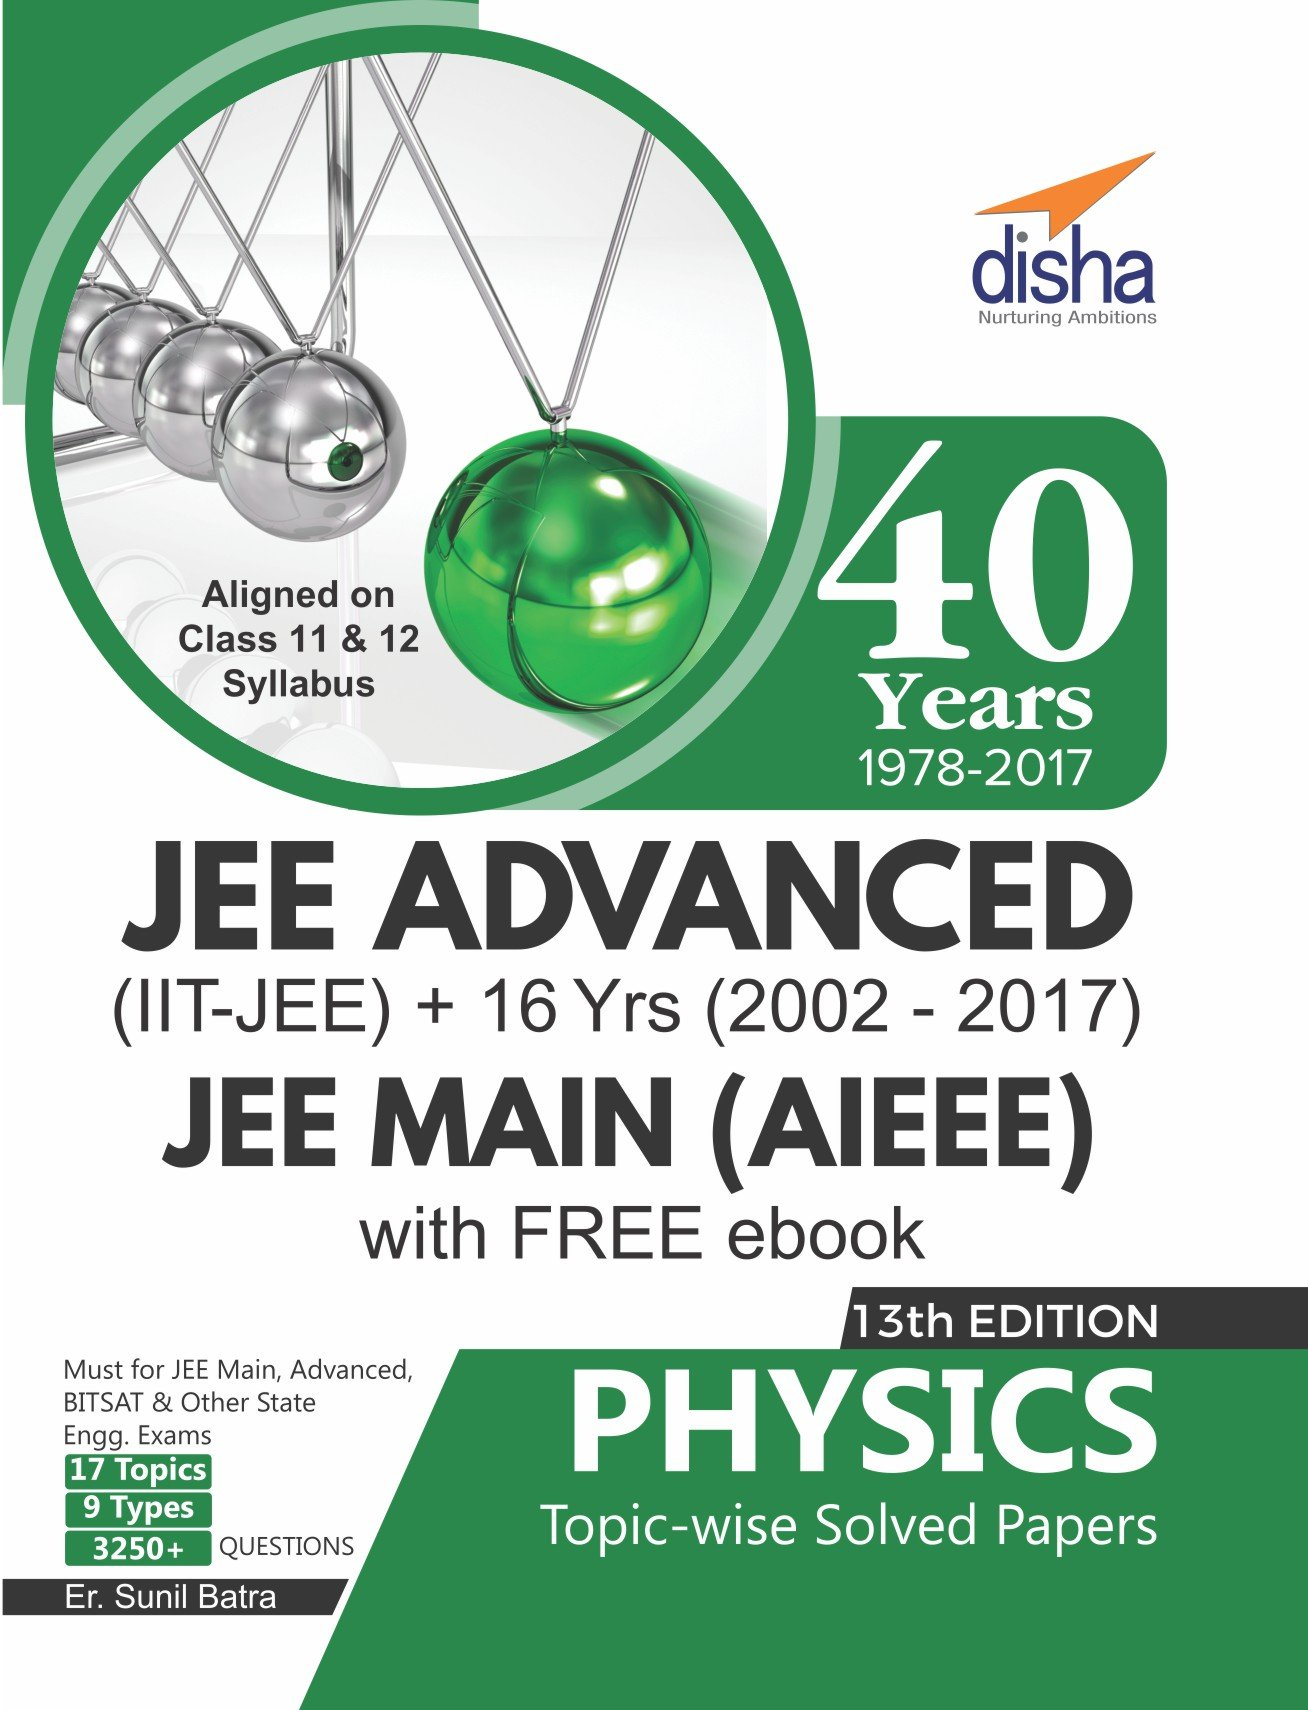 Higher physics guide ebook access options array pdf 40 years iit jee advanced 16 yrs jee main topic wise solved rh fandeluxe Image collections